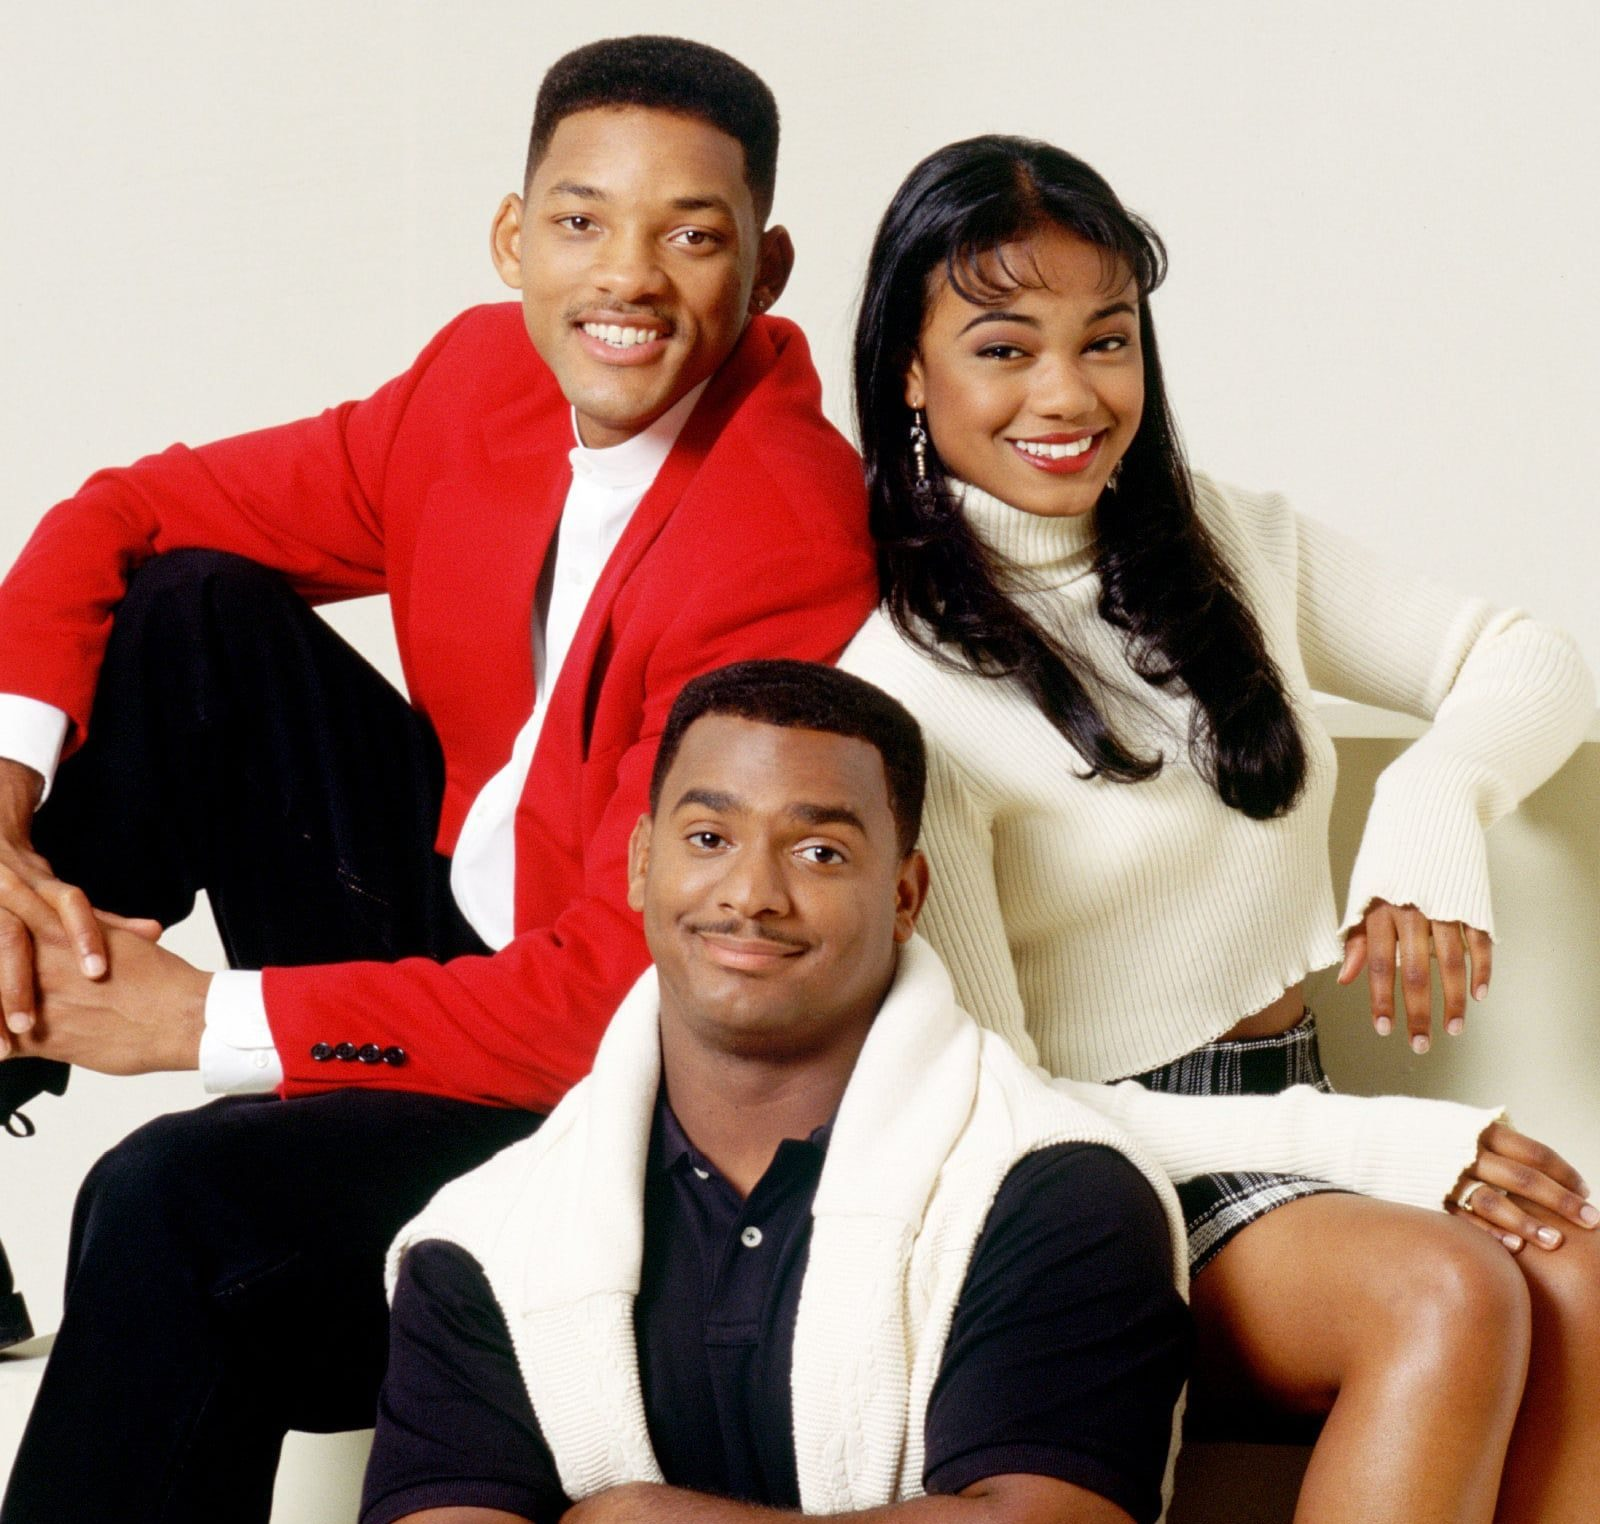 efd1772257930d555a6c99e4f33e64c3 e1603285390315 20 Things You May Not Have Realised About The Fresh Prince Of Bel-Air